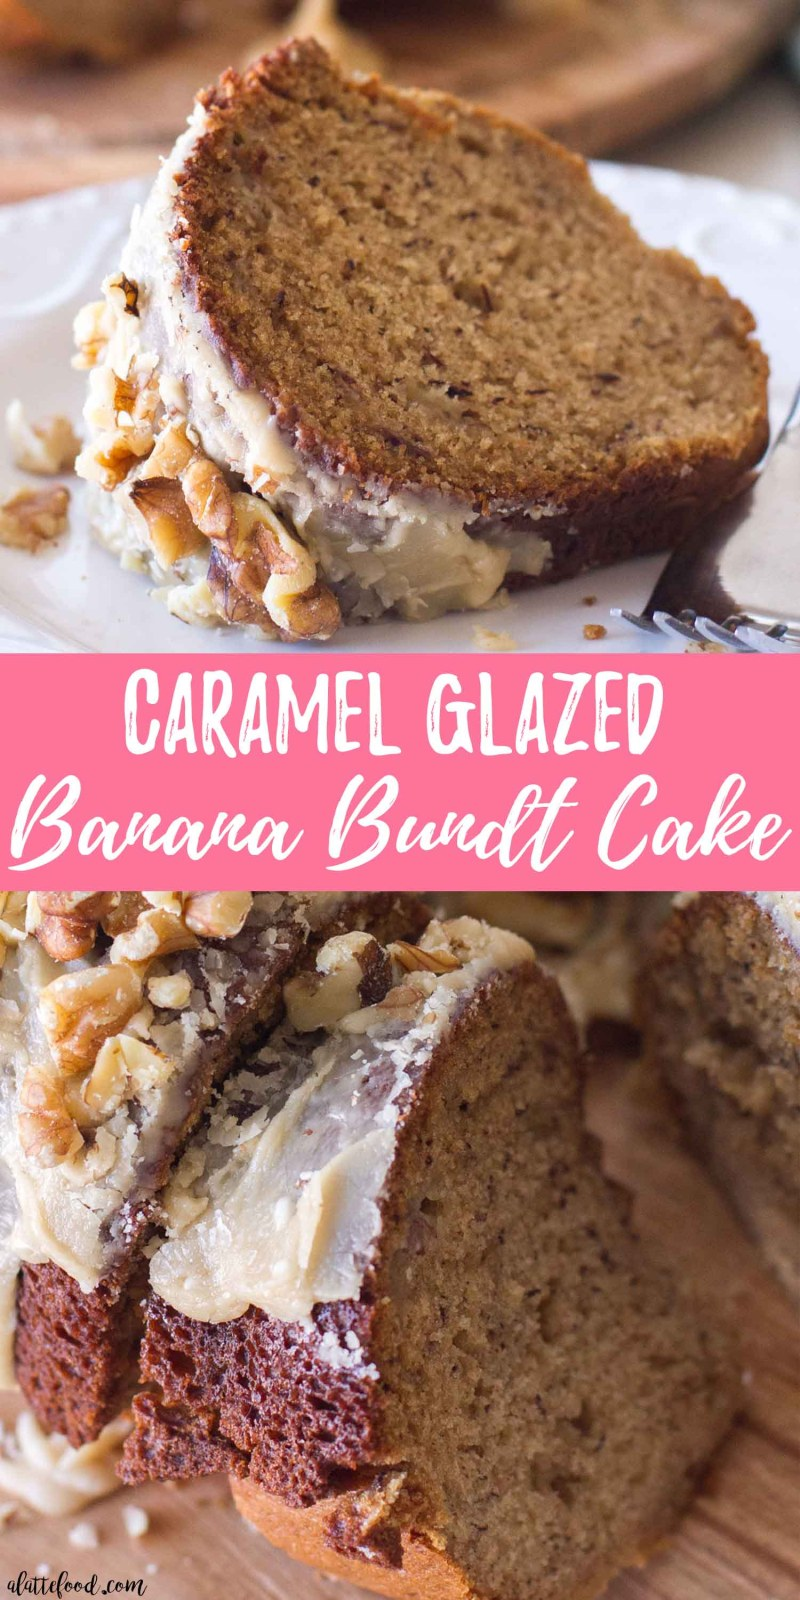 This homemade caramel banana bundt cake is such an easy dessert recipe and a perfect recipe to use up all your ripe bananas! This easy banana bundt cake tastes like a cross between a banana cake and a banana bread topped off with an easy caramel glaze recipe!